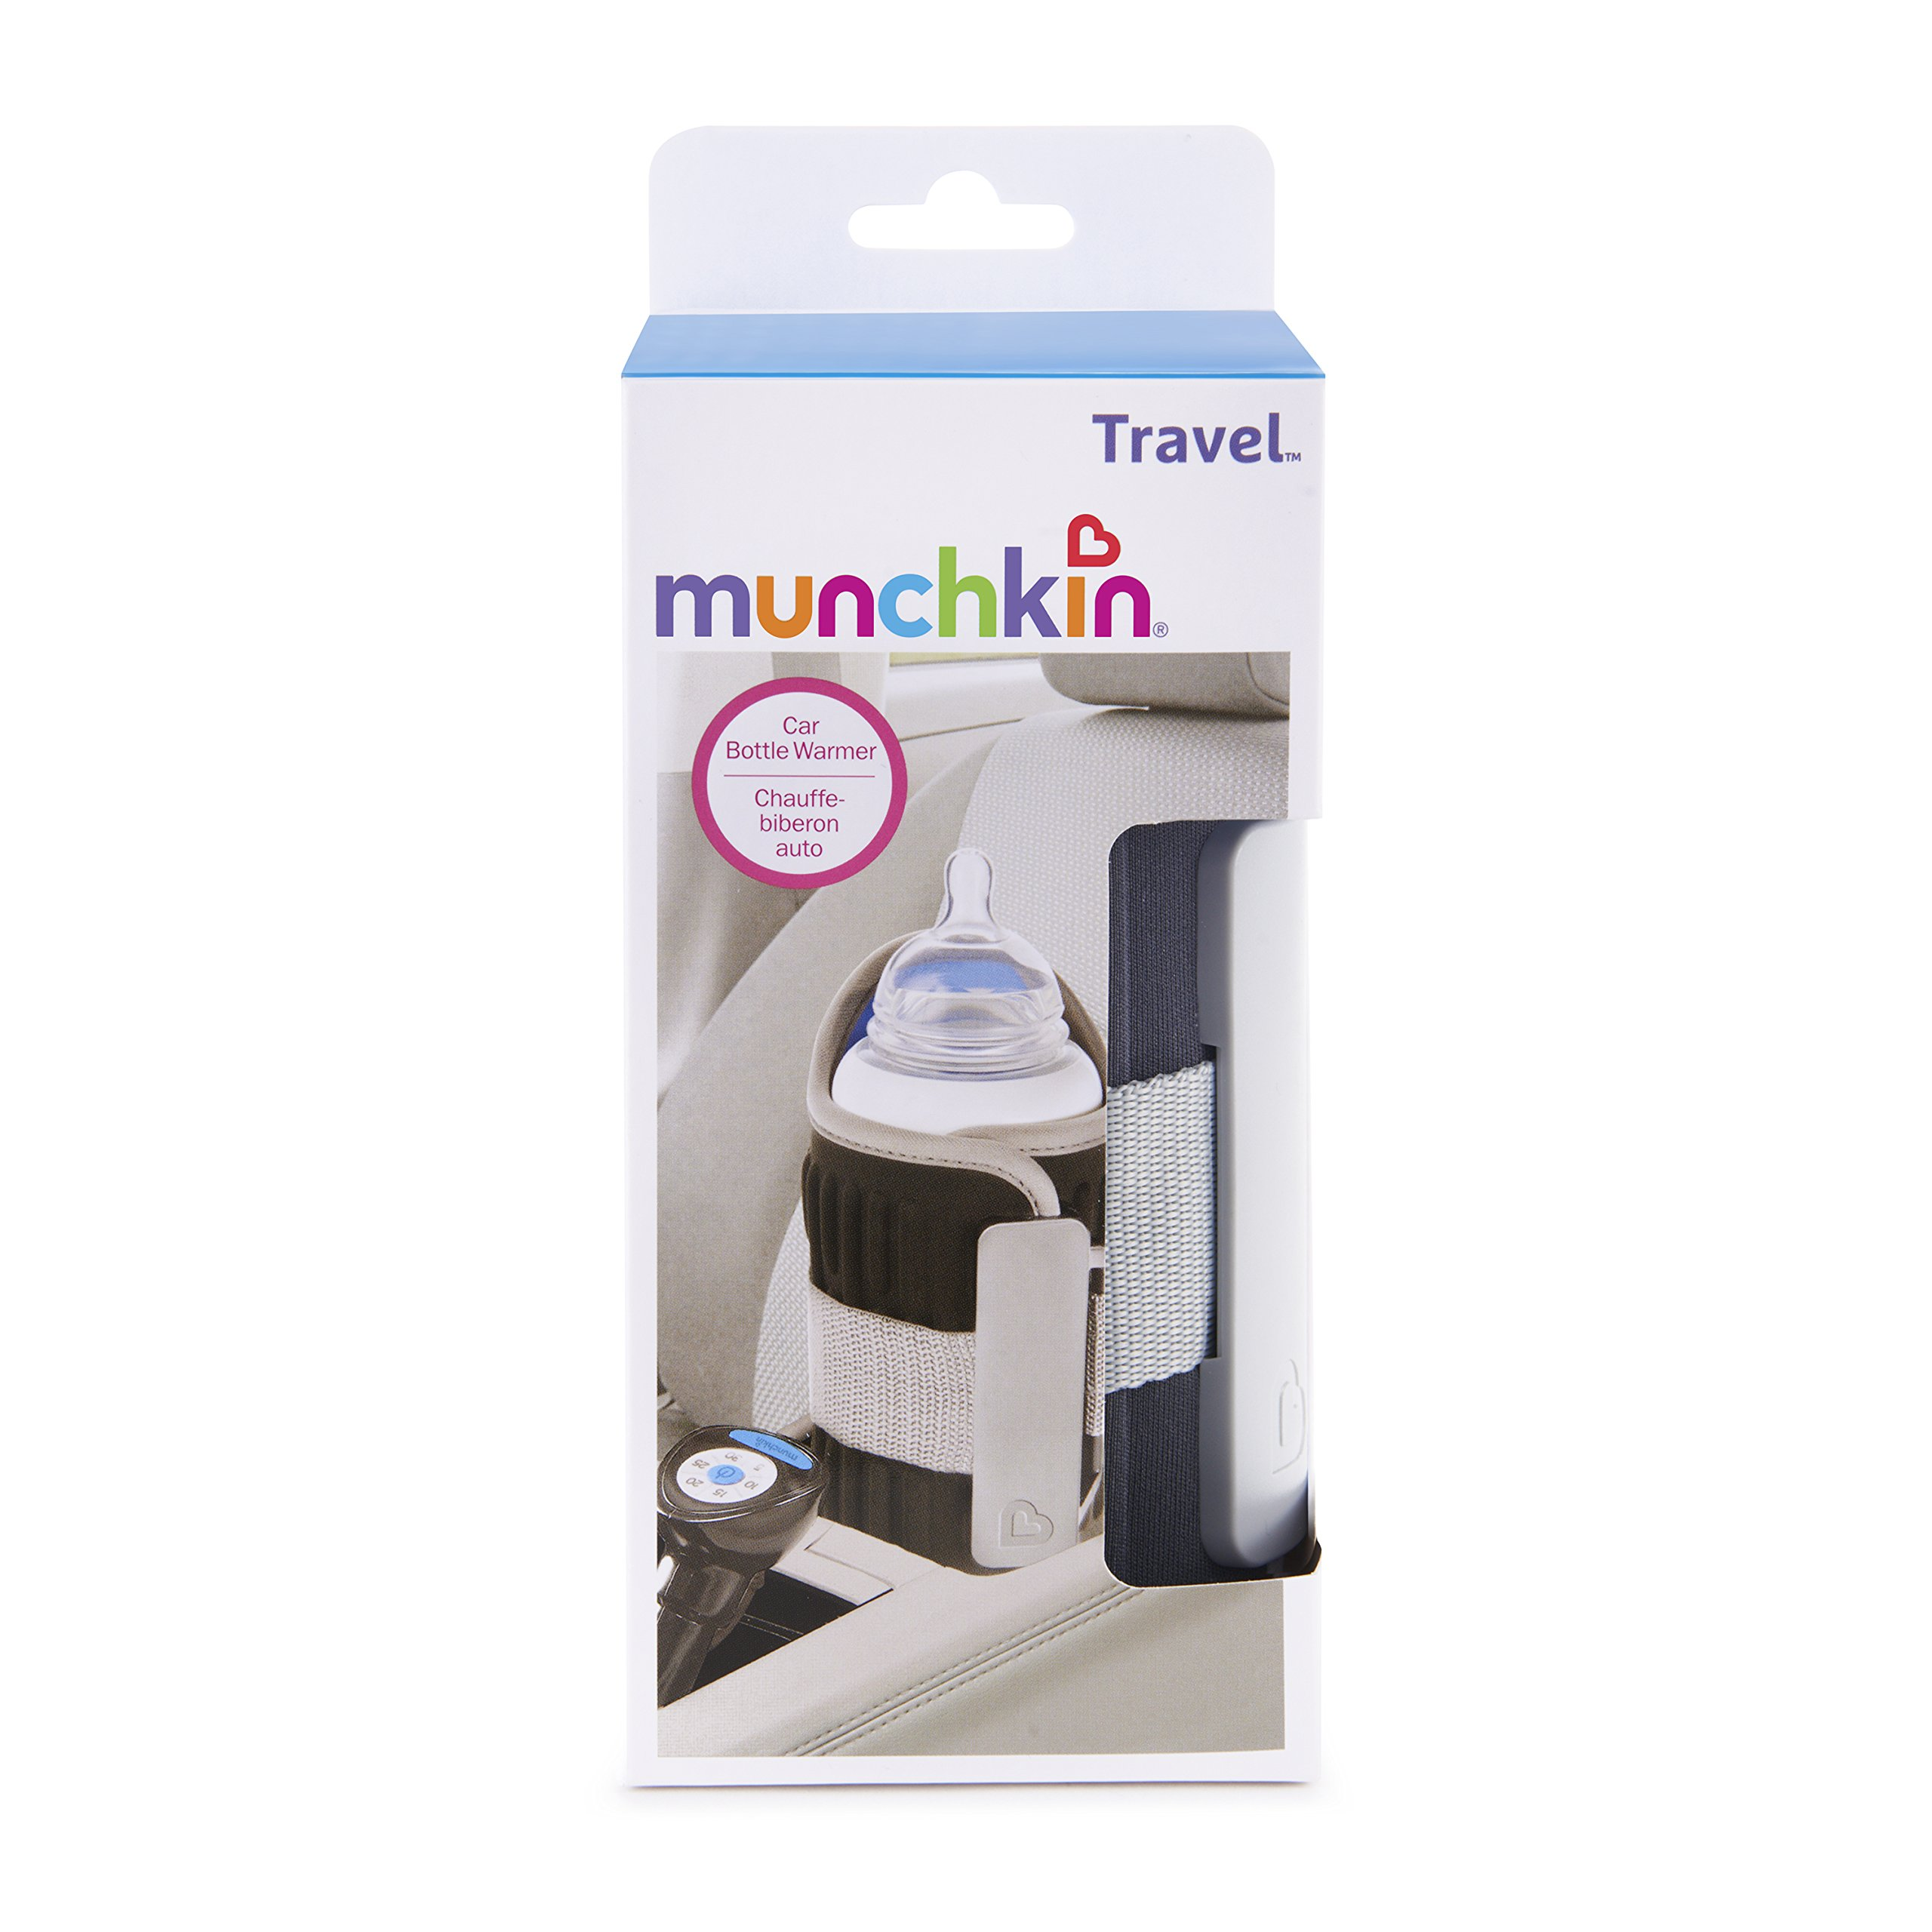 Munchkin Travel Car Baby Bottle Warmer, Grey by Munchkin (Image #7)